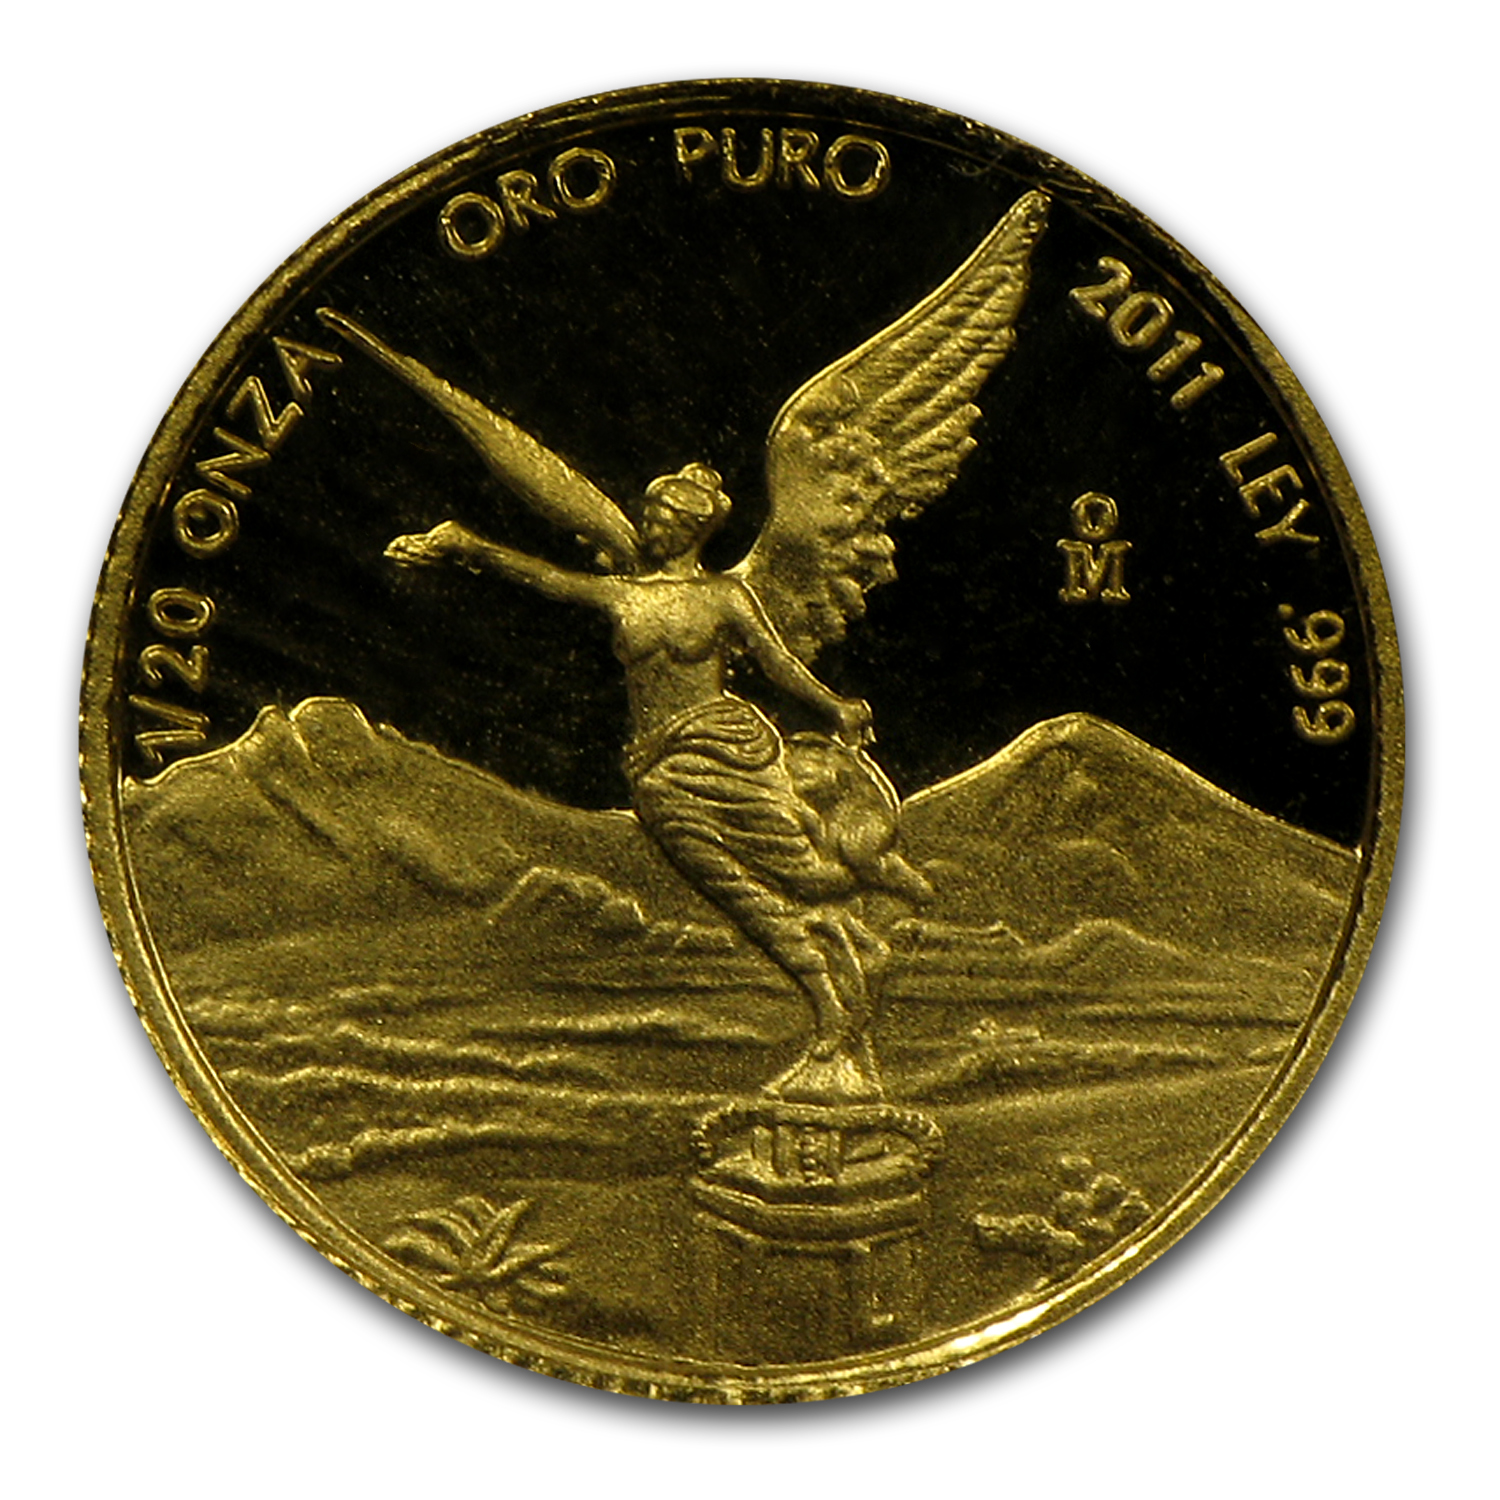 2011 1/20 oz Gold Mexican Libertad - Proof